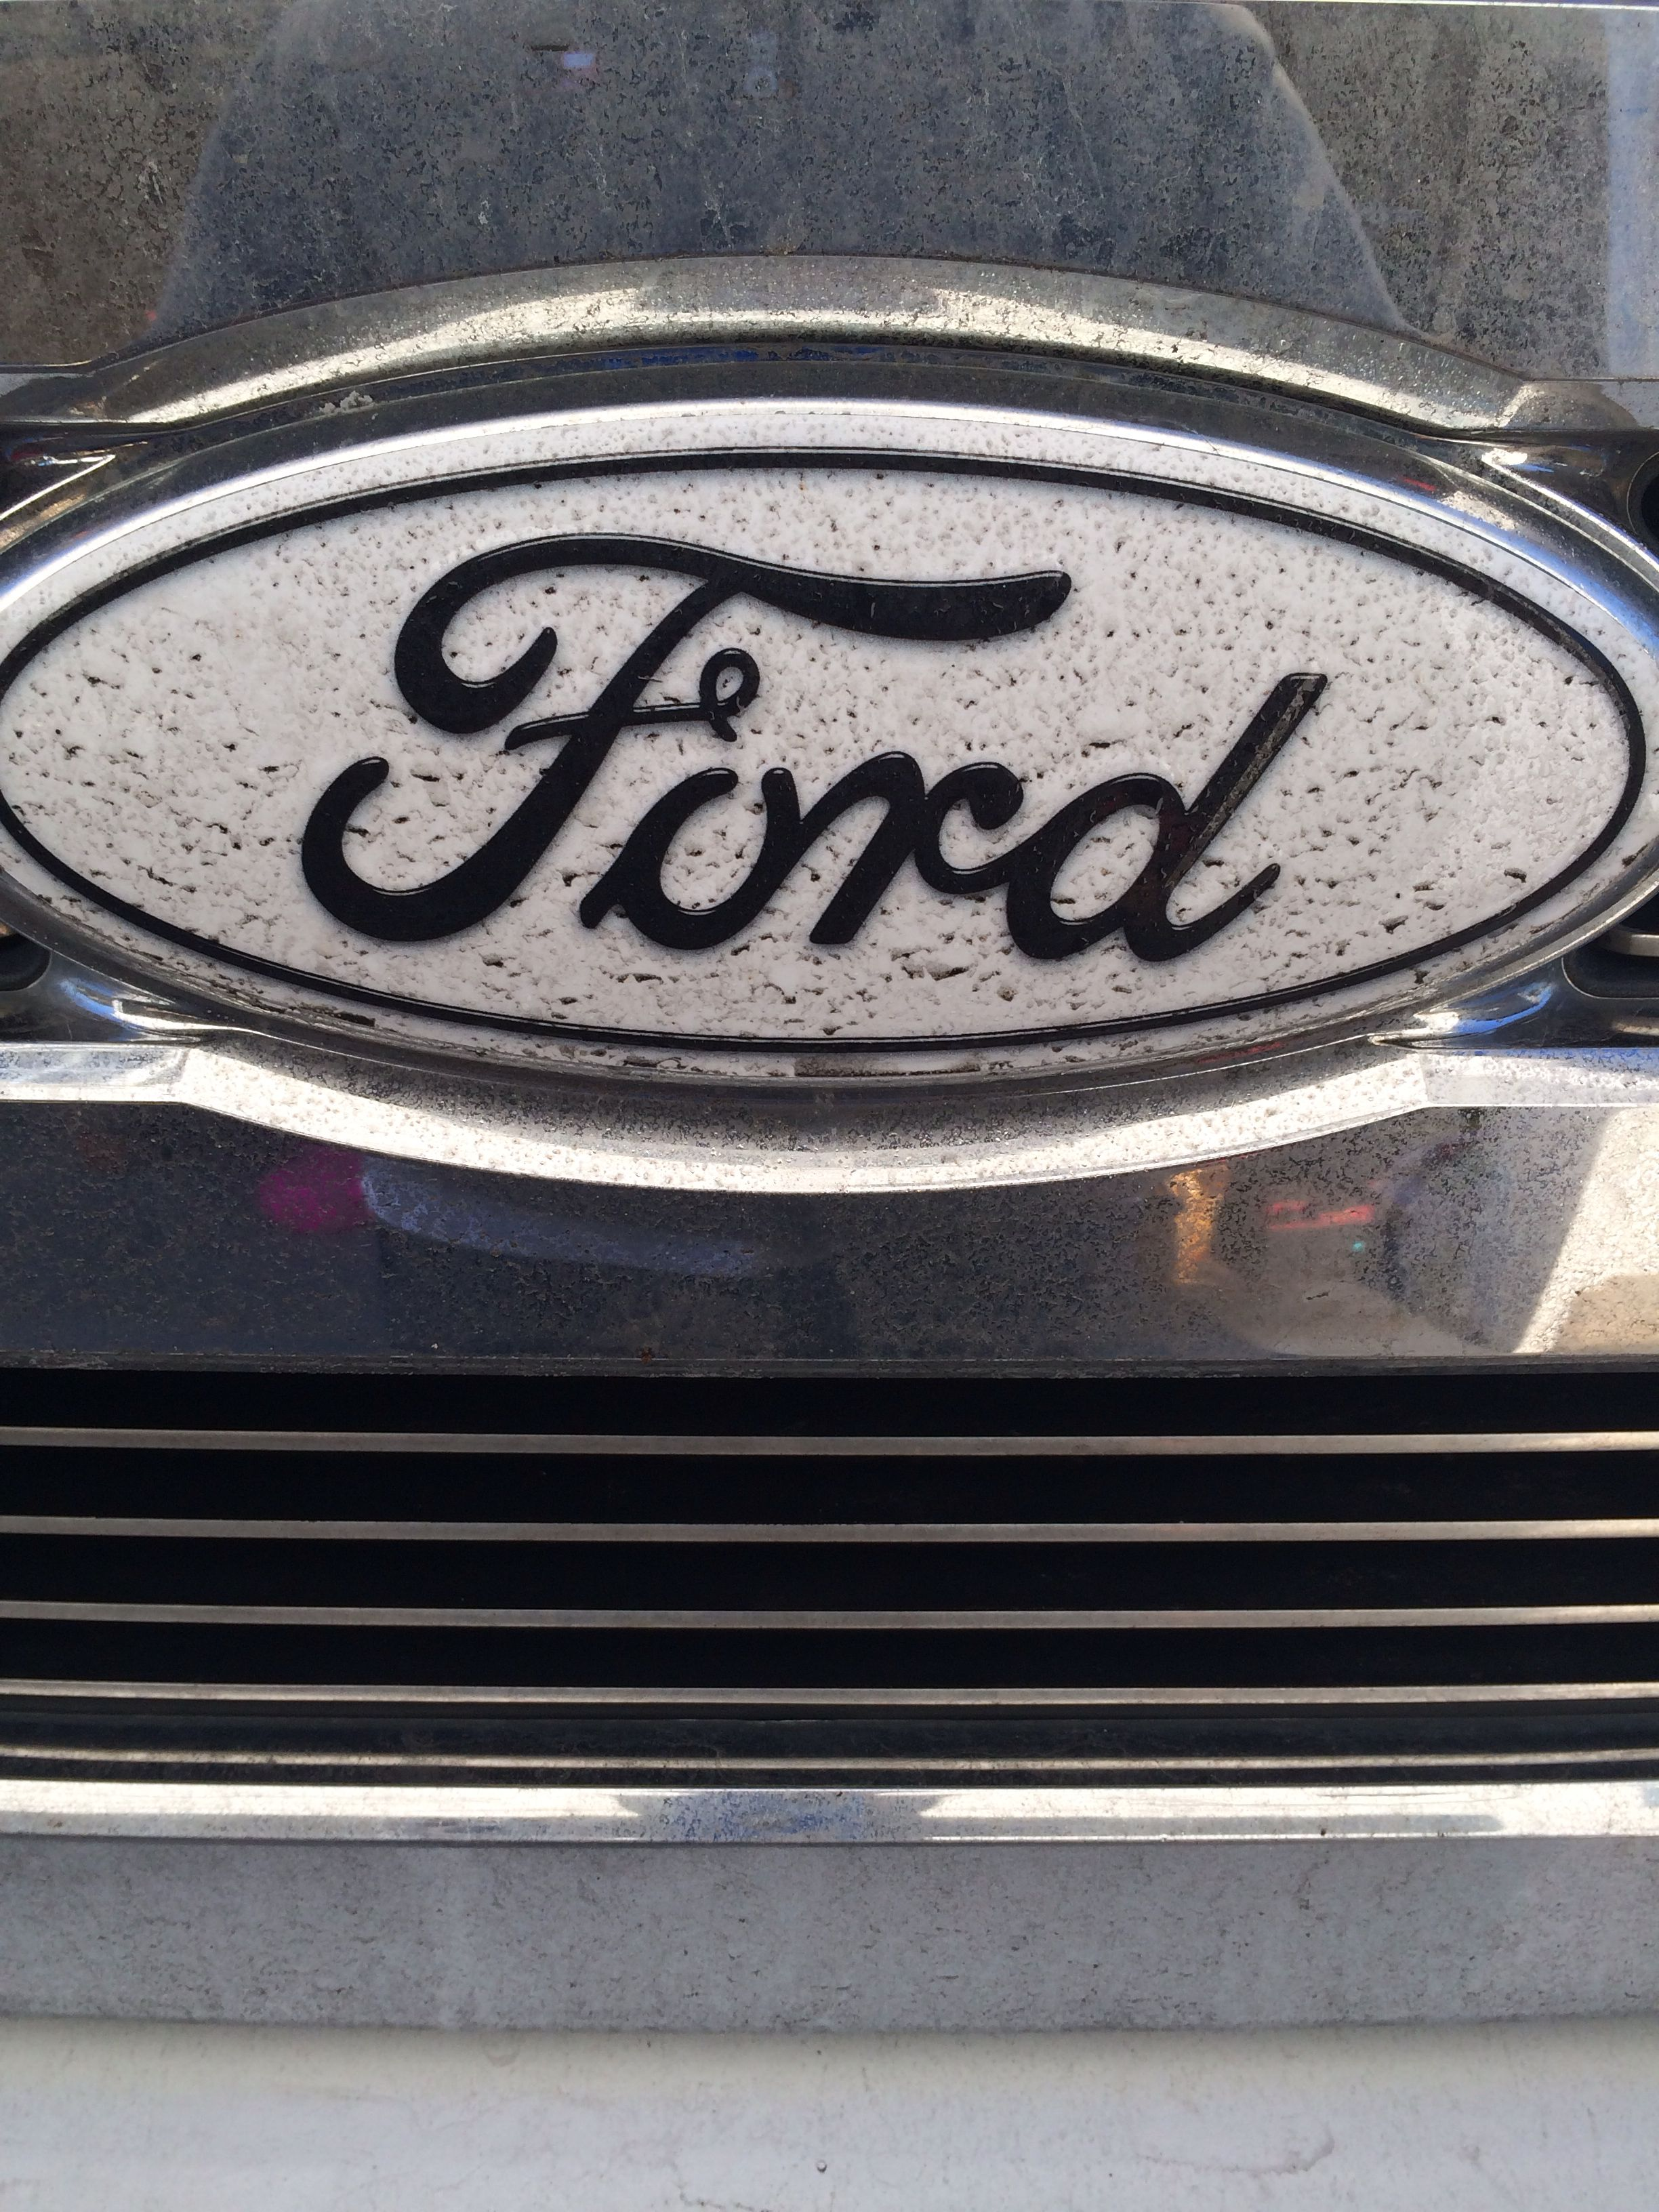 White Ford Decal Front Ford Trucks Truck Accessories Ford Tractors